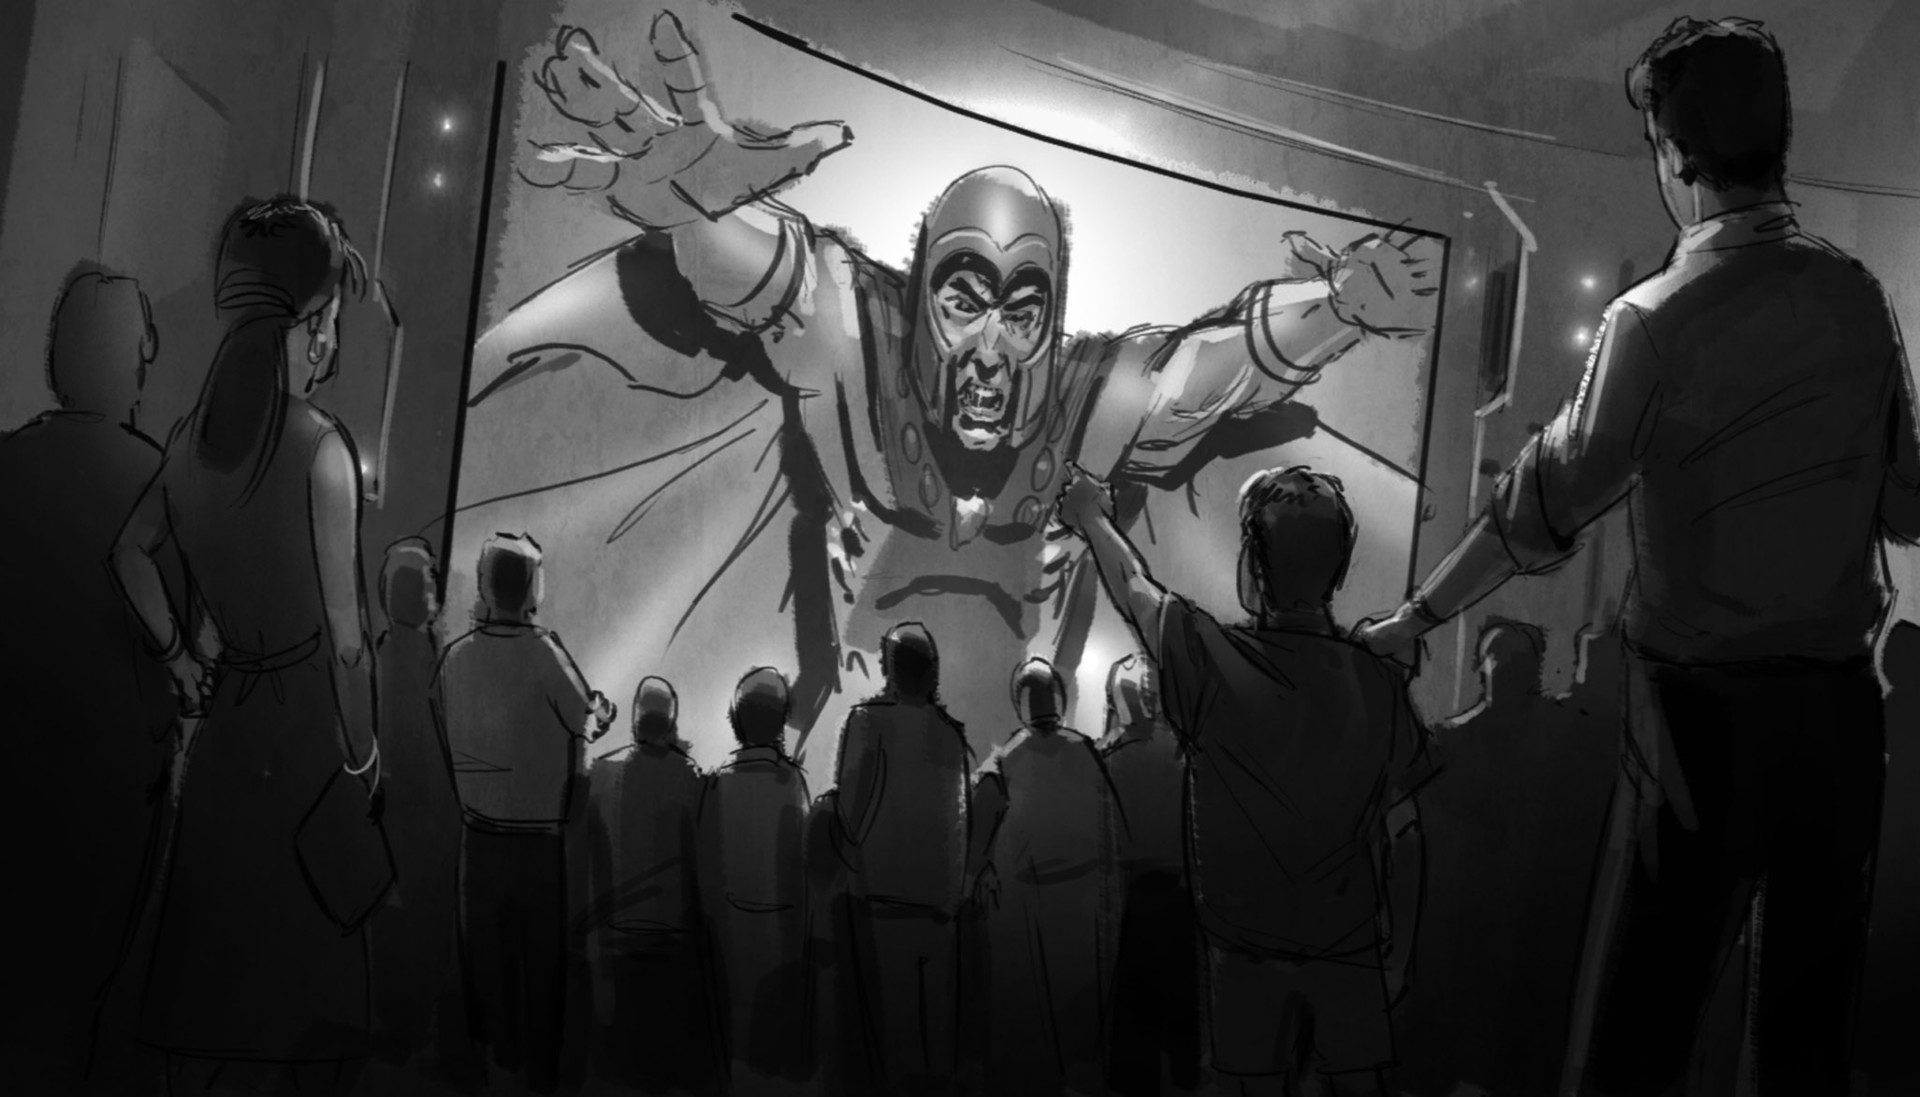 ...which is interrupted by Magneto taking over the feed and thanking Dr. X for gathering the latest batch of recruits for his cause.